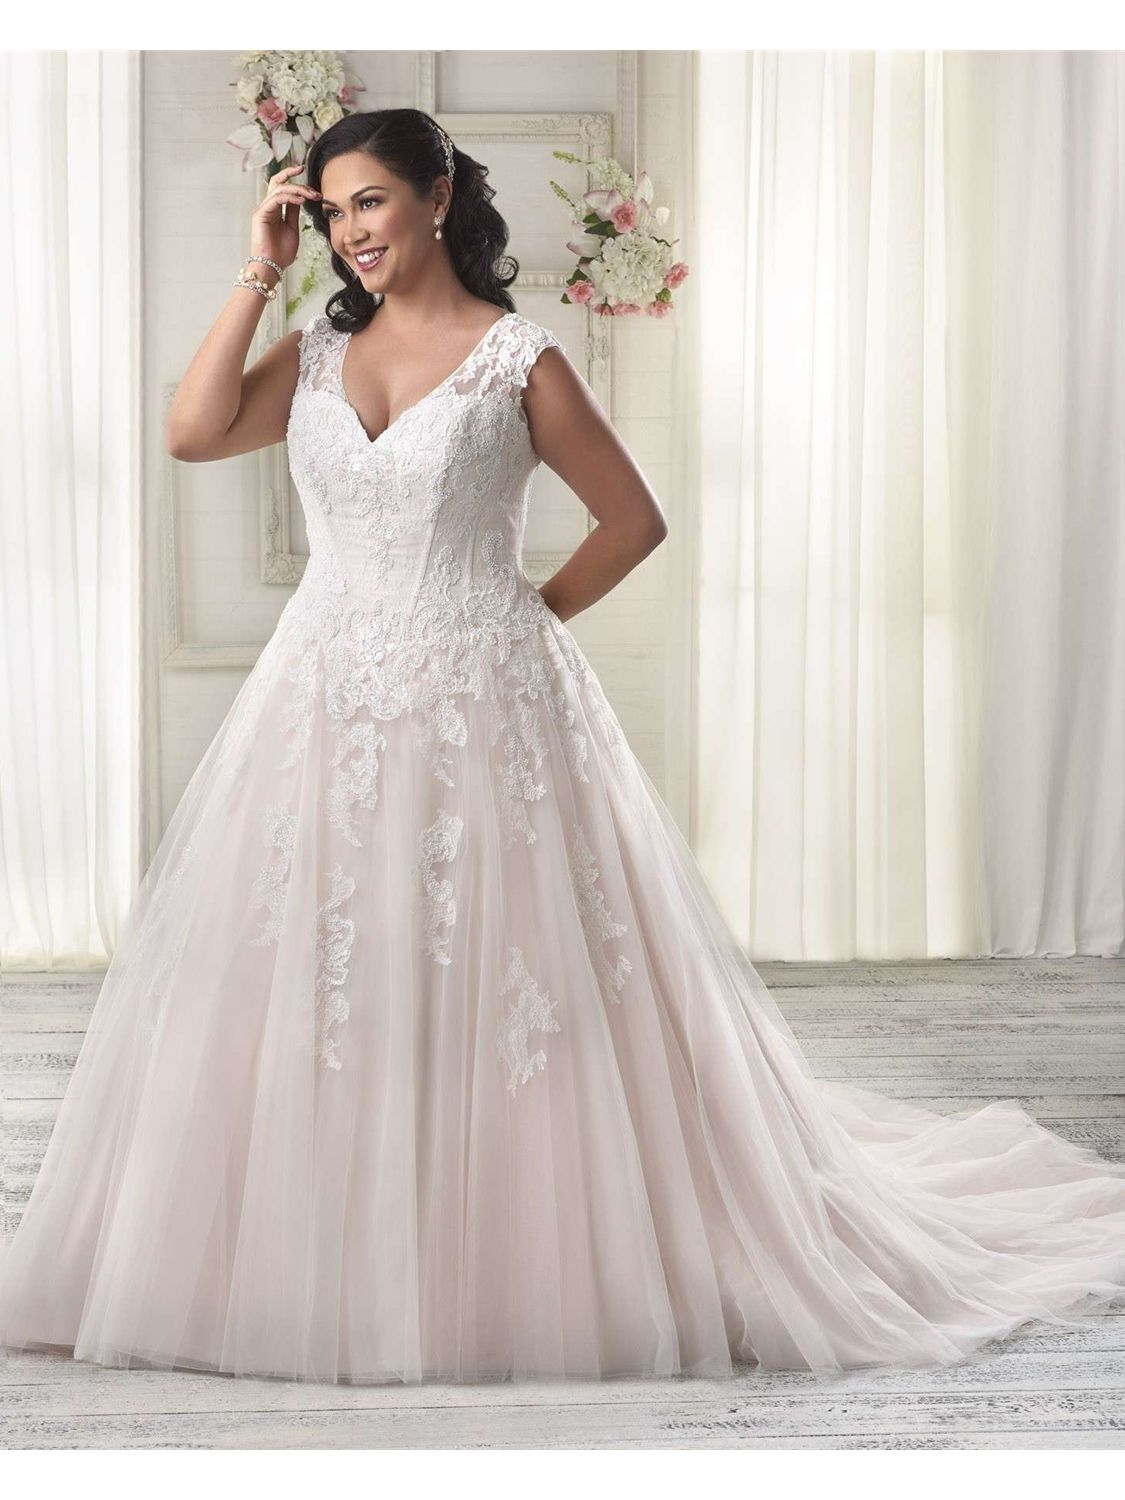 b4fea8cfc40 Unforgettable by Bonny Wedding Dress Style 1605